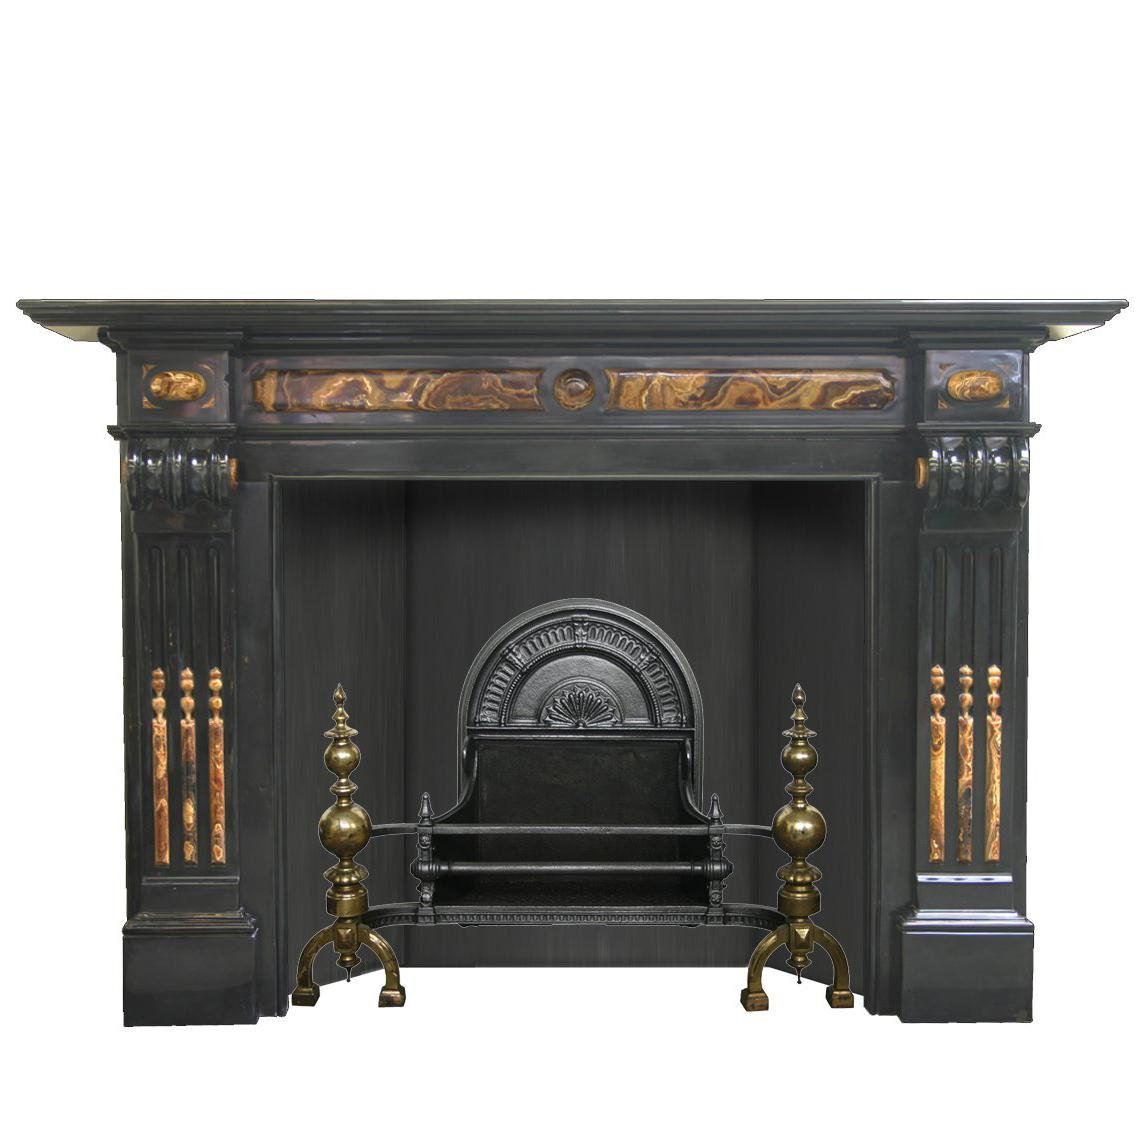 19th Century Baroque Belgian Black Marble and Onyx Chimneypiece